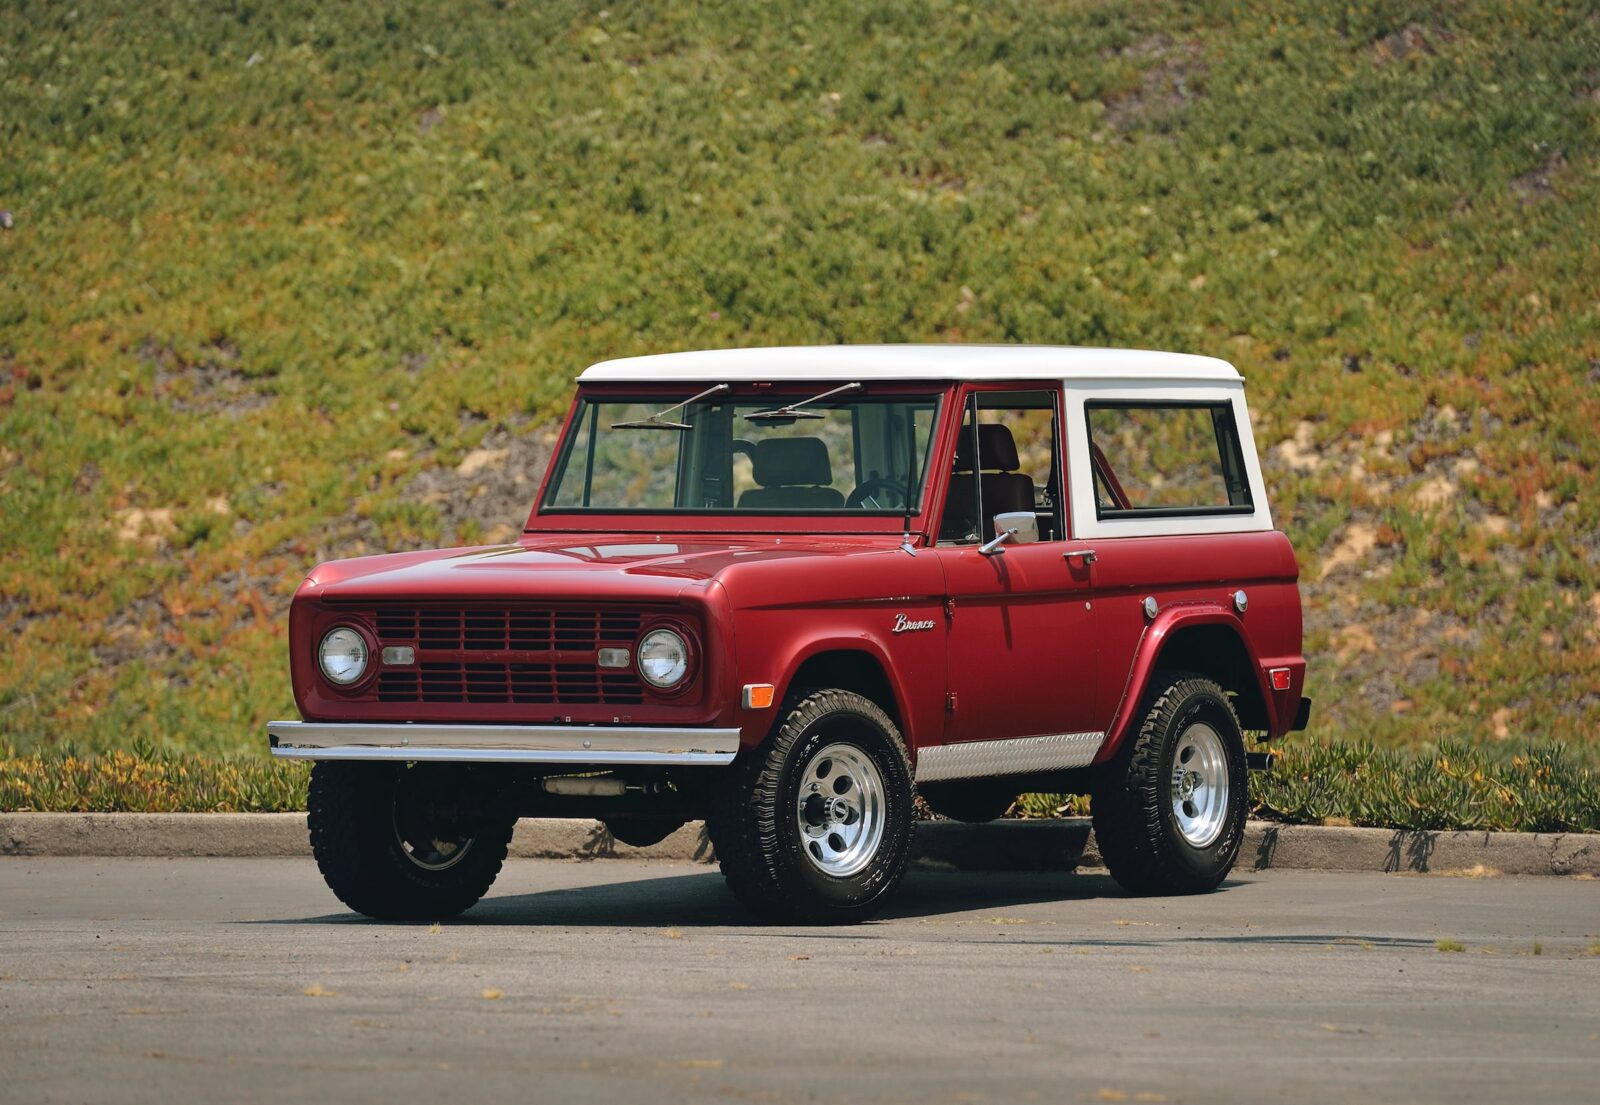 Ford Bronco 4x4 Car 1600x1105 - Restomod: 1968 Ford Bronco 302 V8